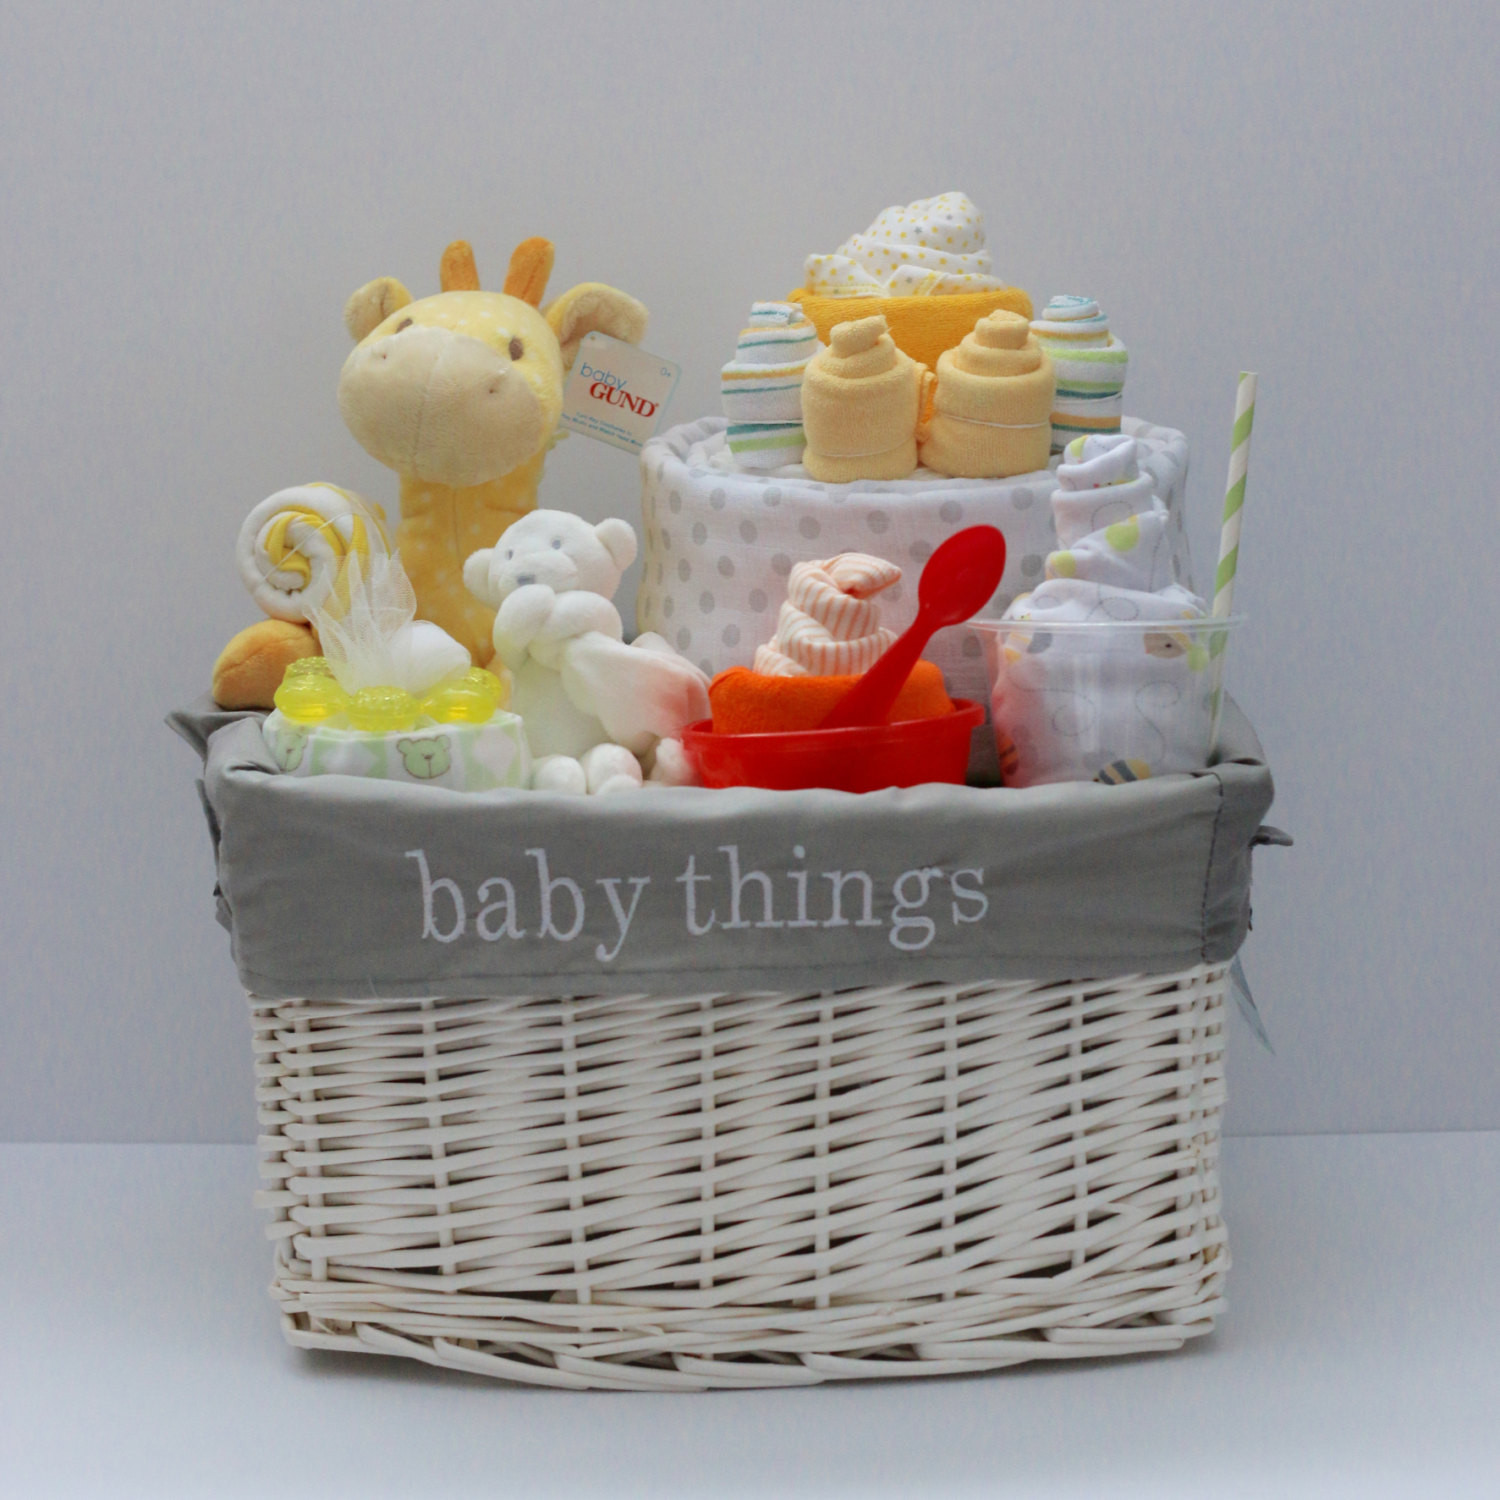 Best ideas about Baby Shower Gift Basket Ideas . Save or Pin Gender Neutral Baby Gift Basket Baby Shower Gift Unique Baby Now.